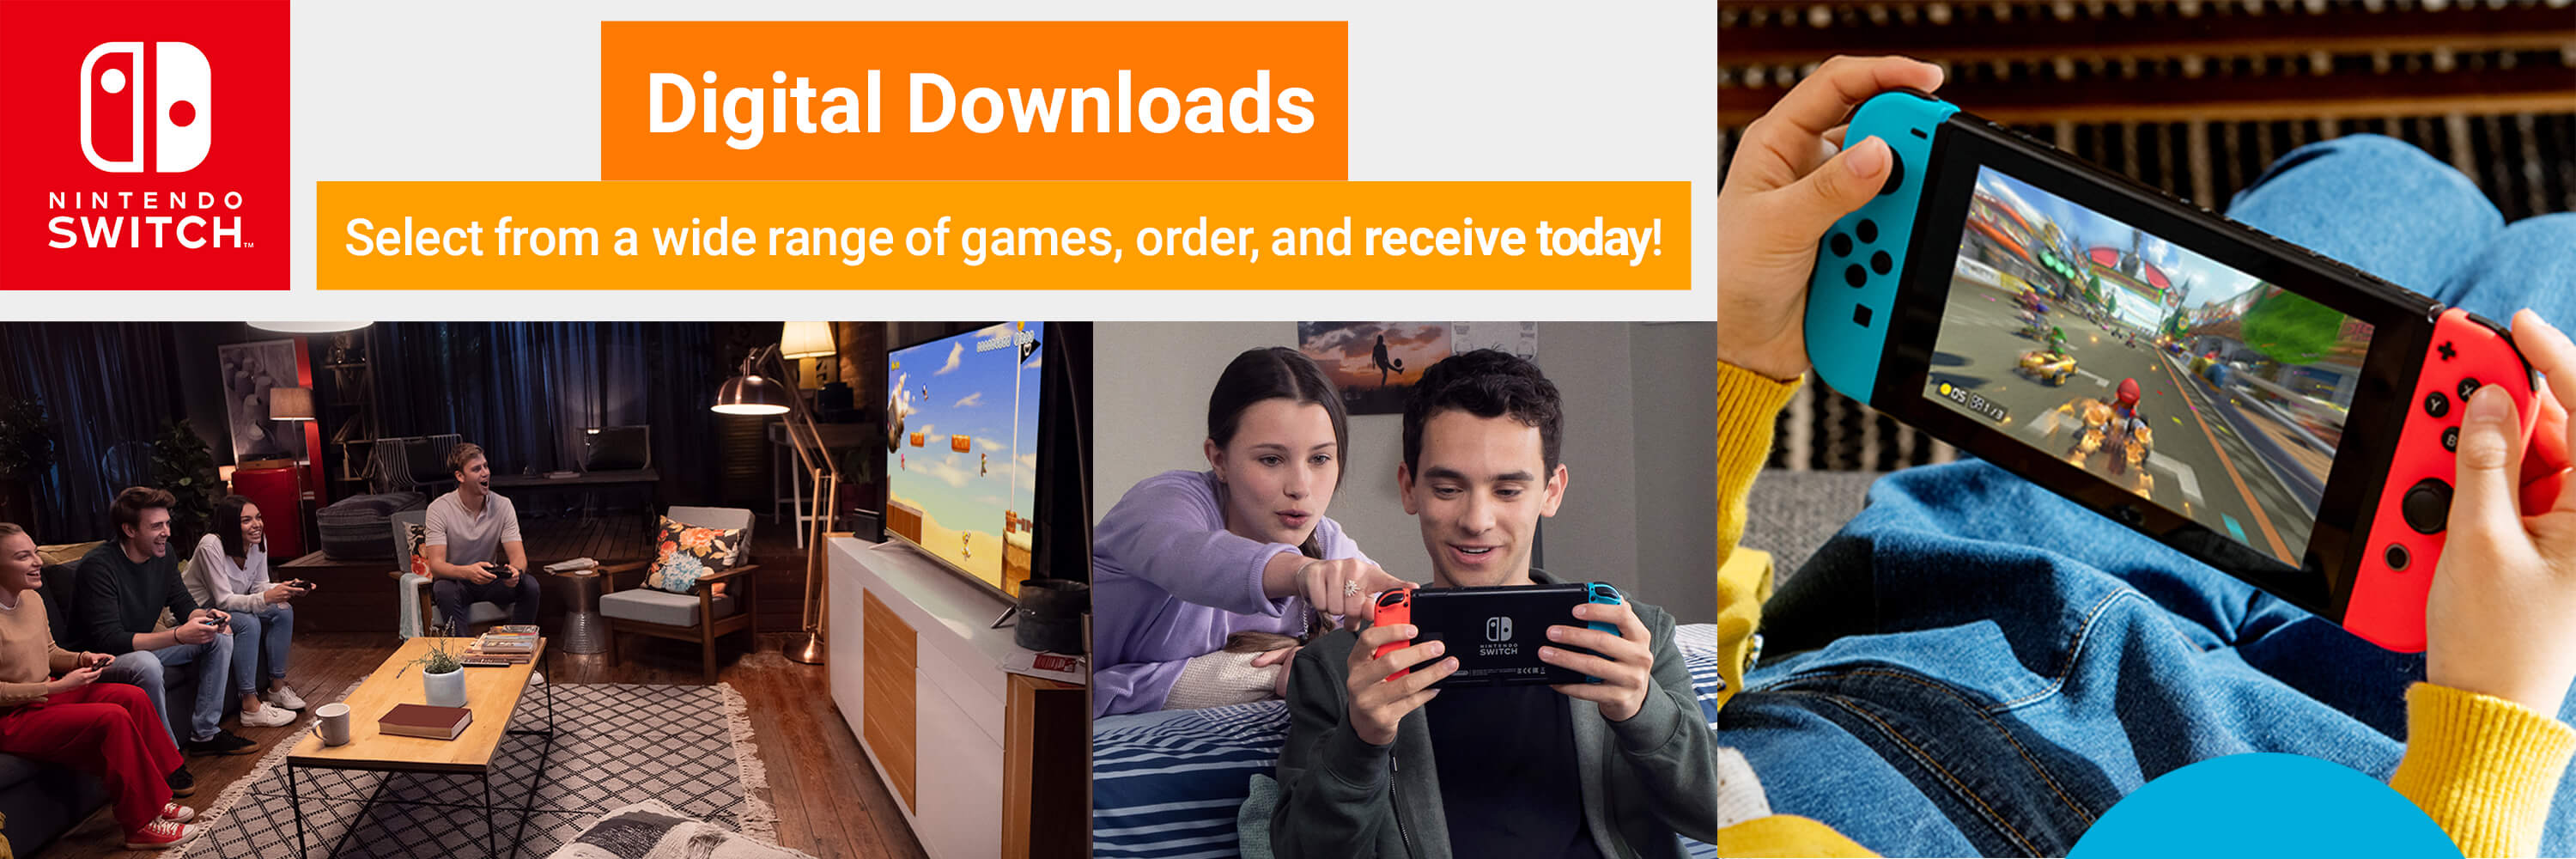 Nintendo Switch Digital Downloads - Select from a wide range of games, order, and receive today!